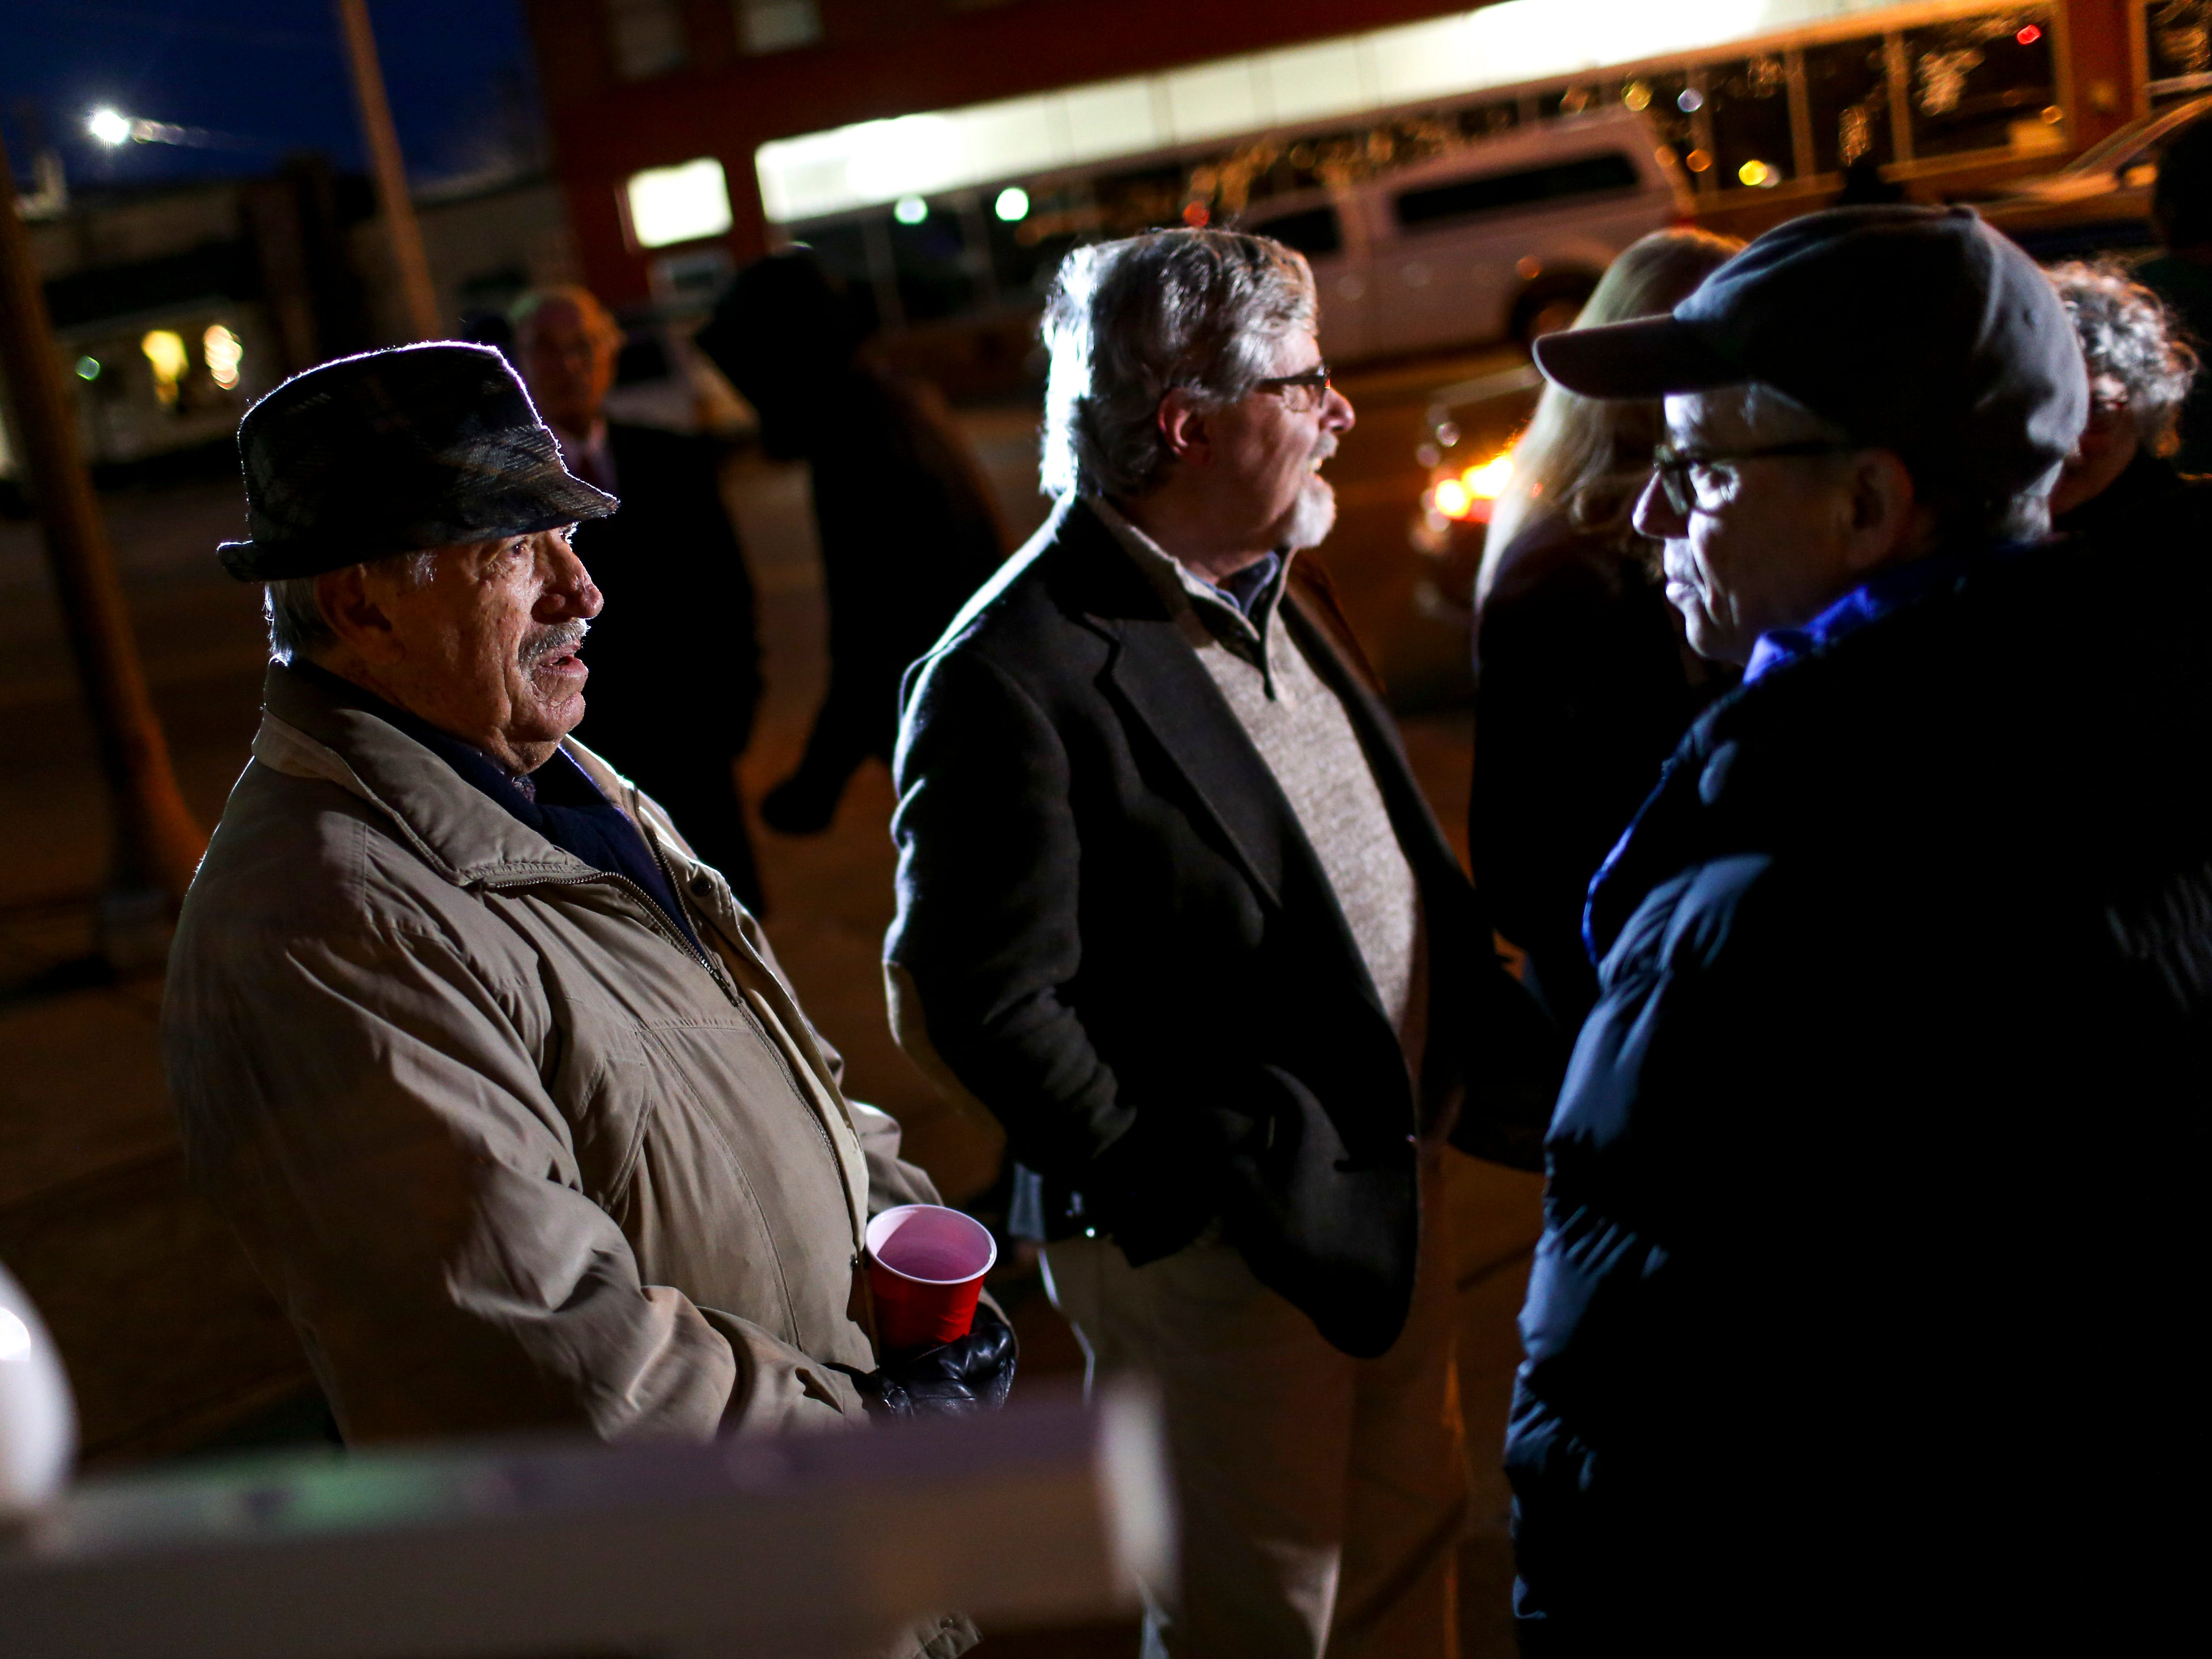 Members of the B'nai congregation mingle and chat with others during the first public Chanukah Menorah Lighting at Anderson Park in Jackson, Tenn., on Thursday, Dec. 6, 2018.